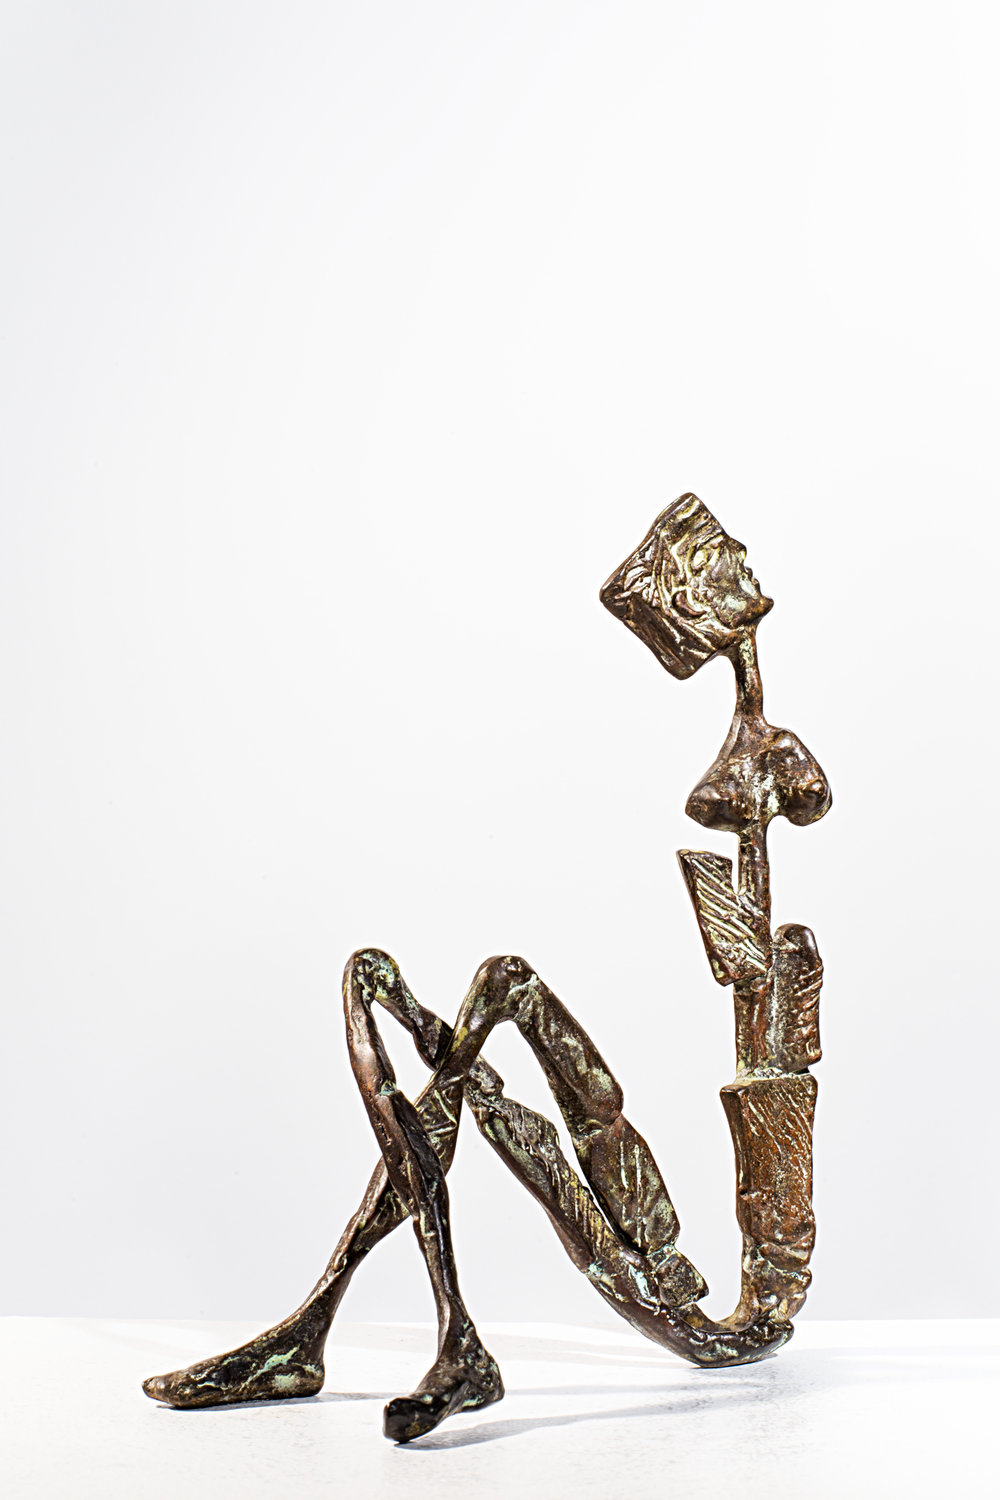 Counting the Stars Bronze Ed. /30 Sandcast 19,5 x 16 x 7 cm